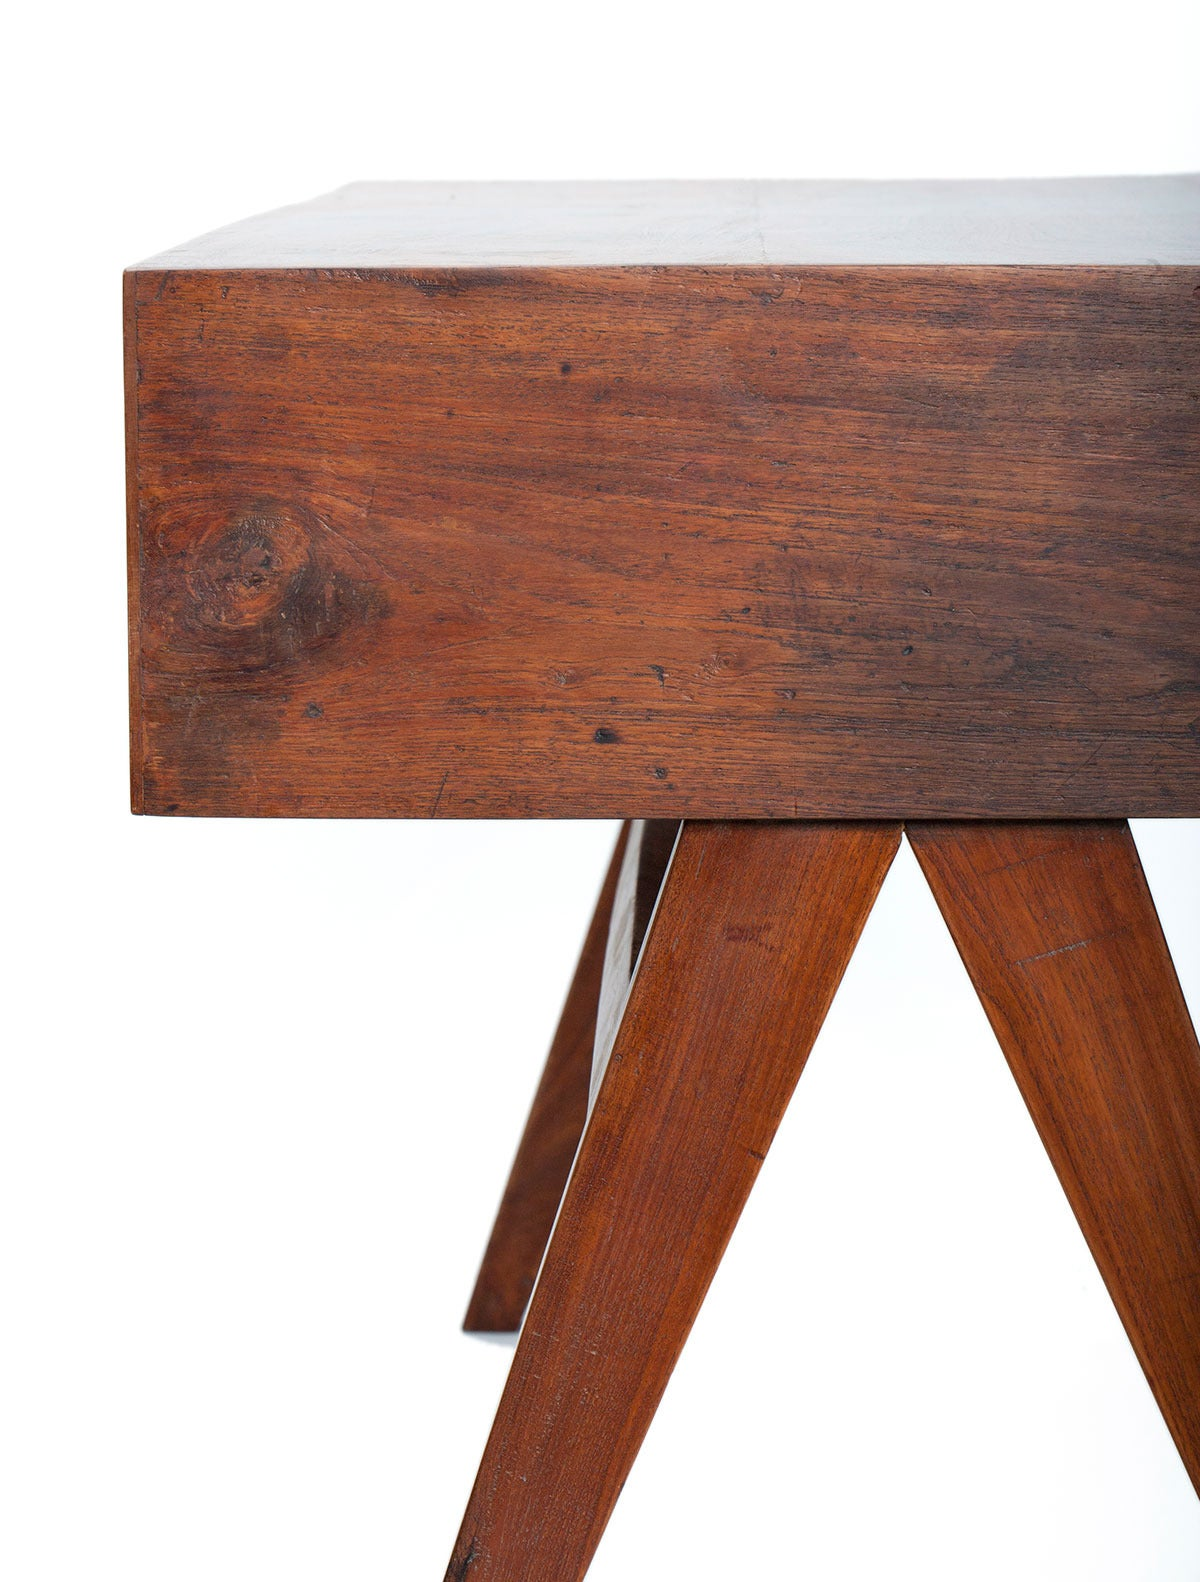 Pierre Jeanneret Desk In Excellent Condition For Sale In New York, NY